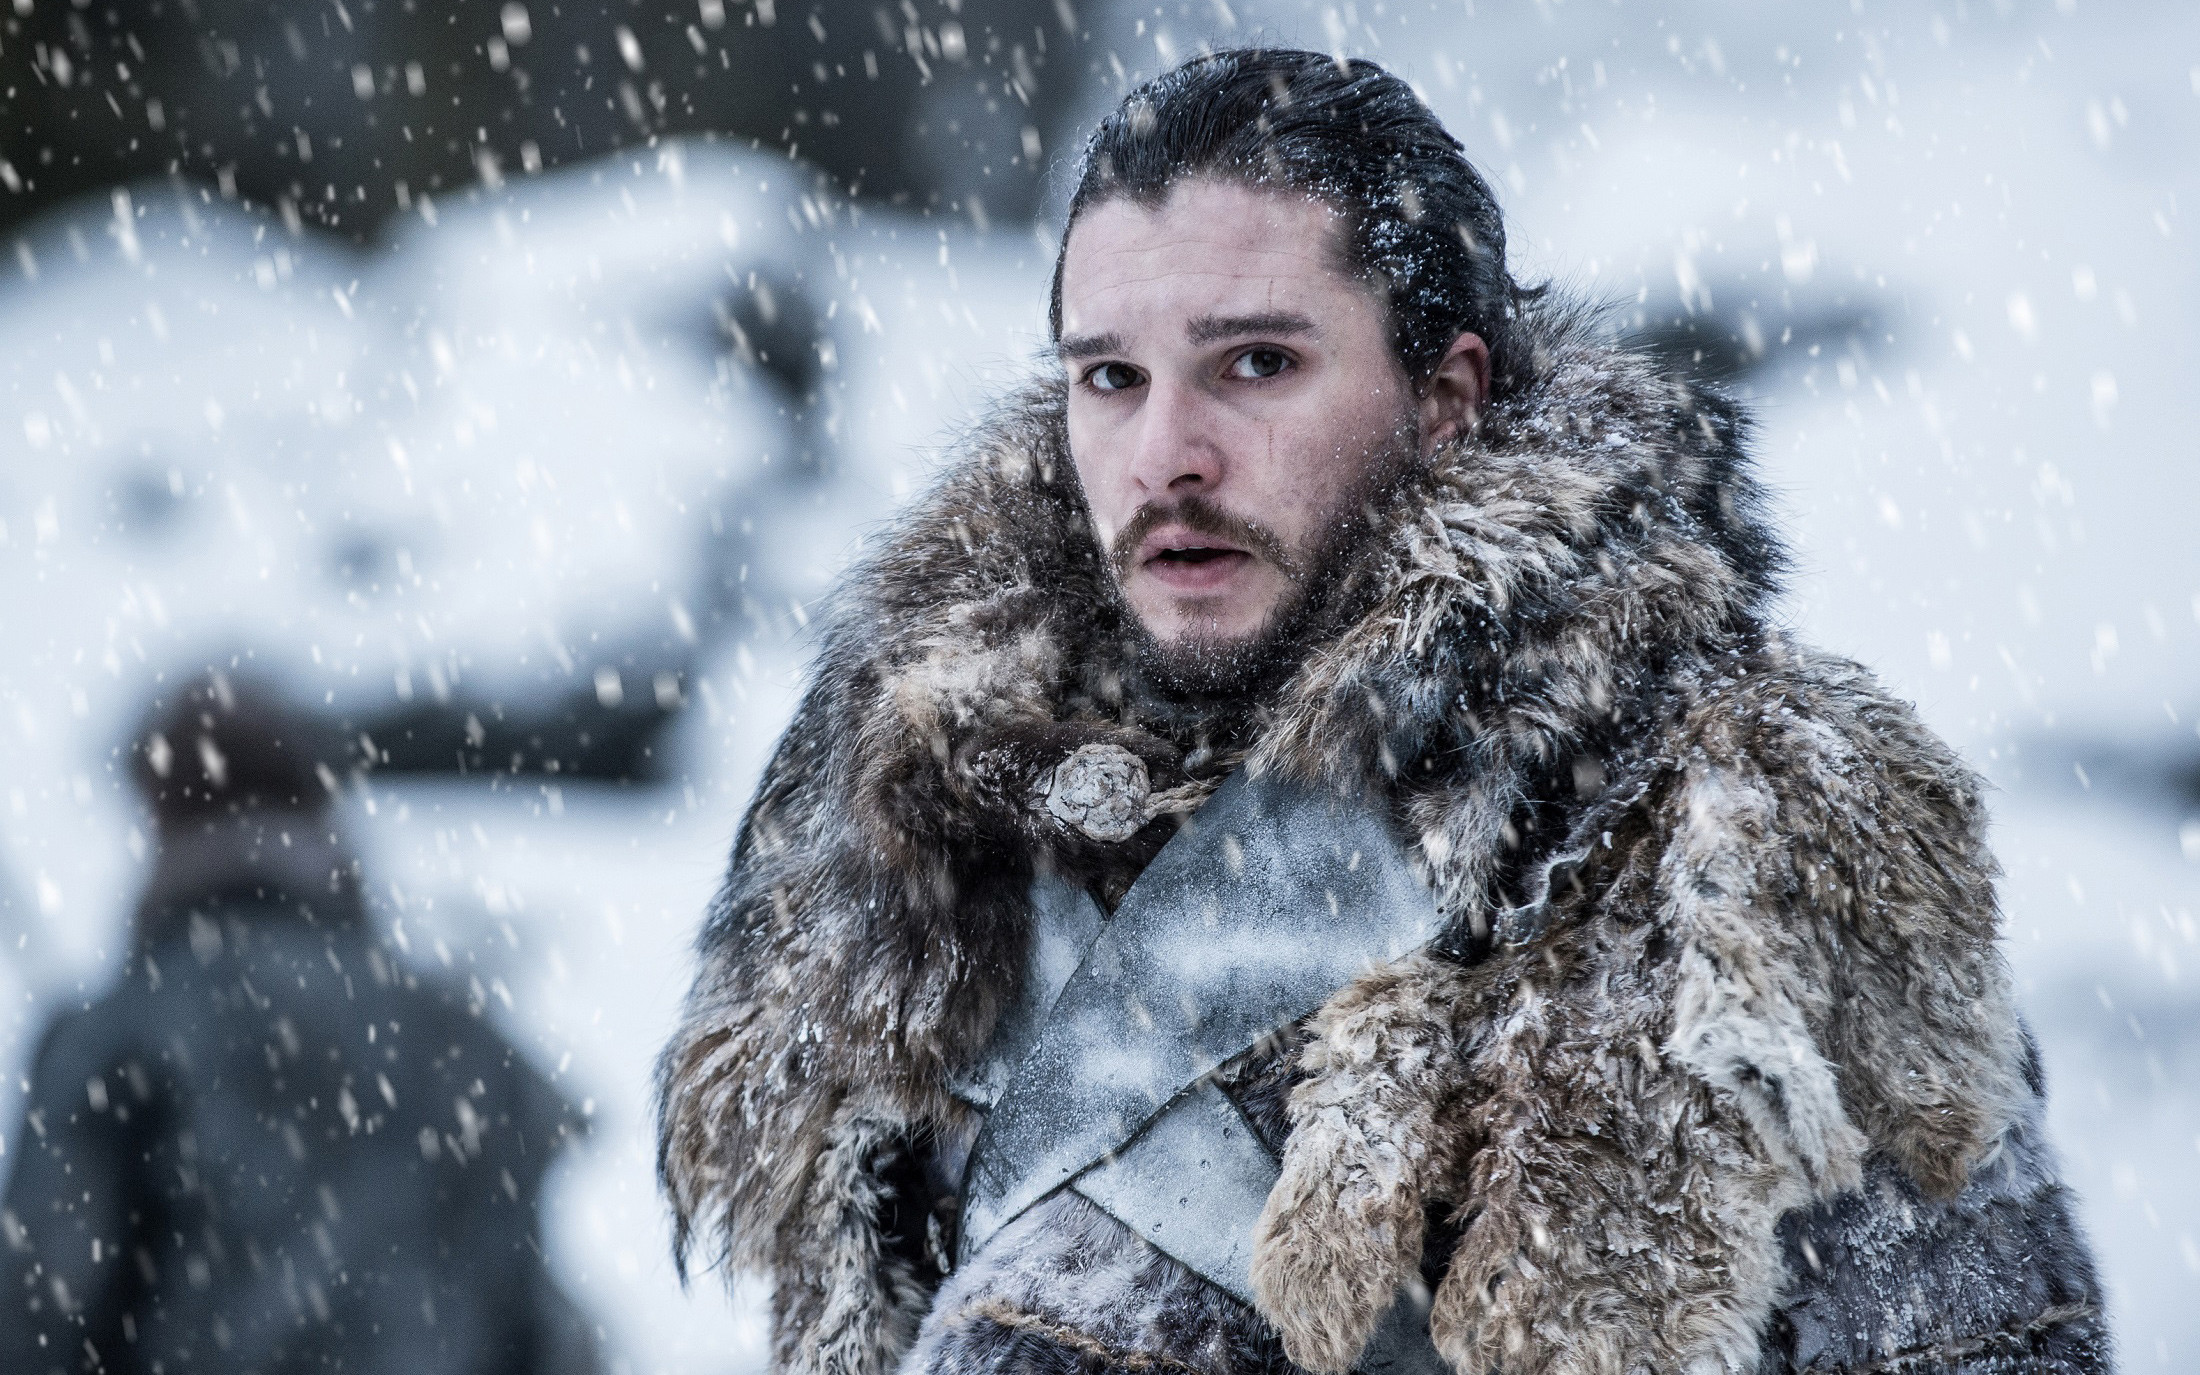 2200x1375 Jon Snow Game of Thrones Season 7 2017